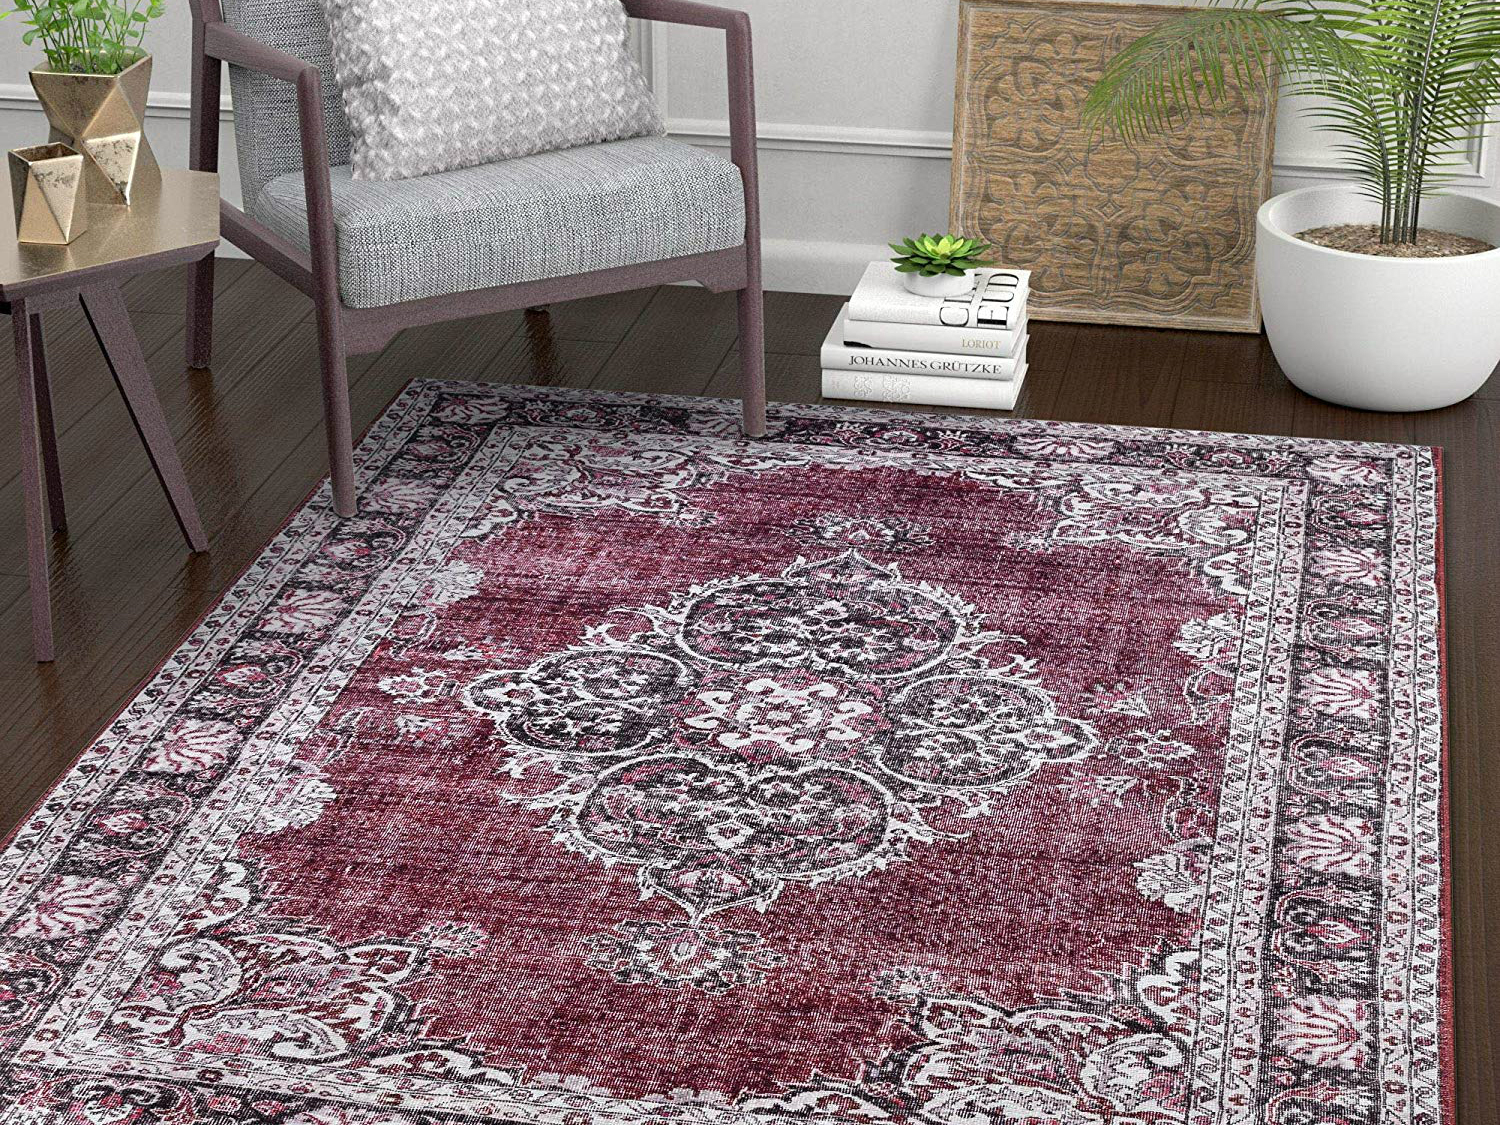 Best Machine Washable Rugs For Every